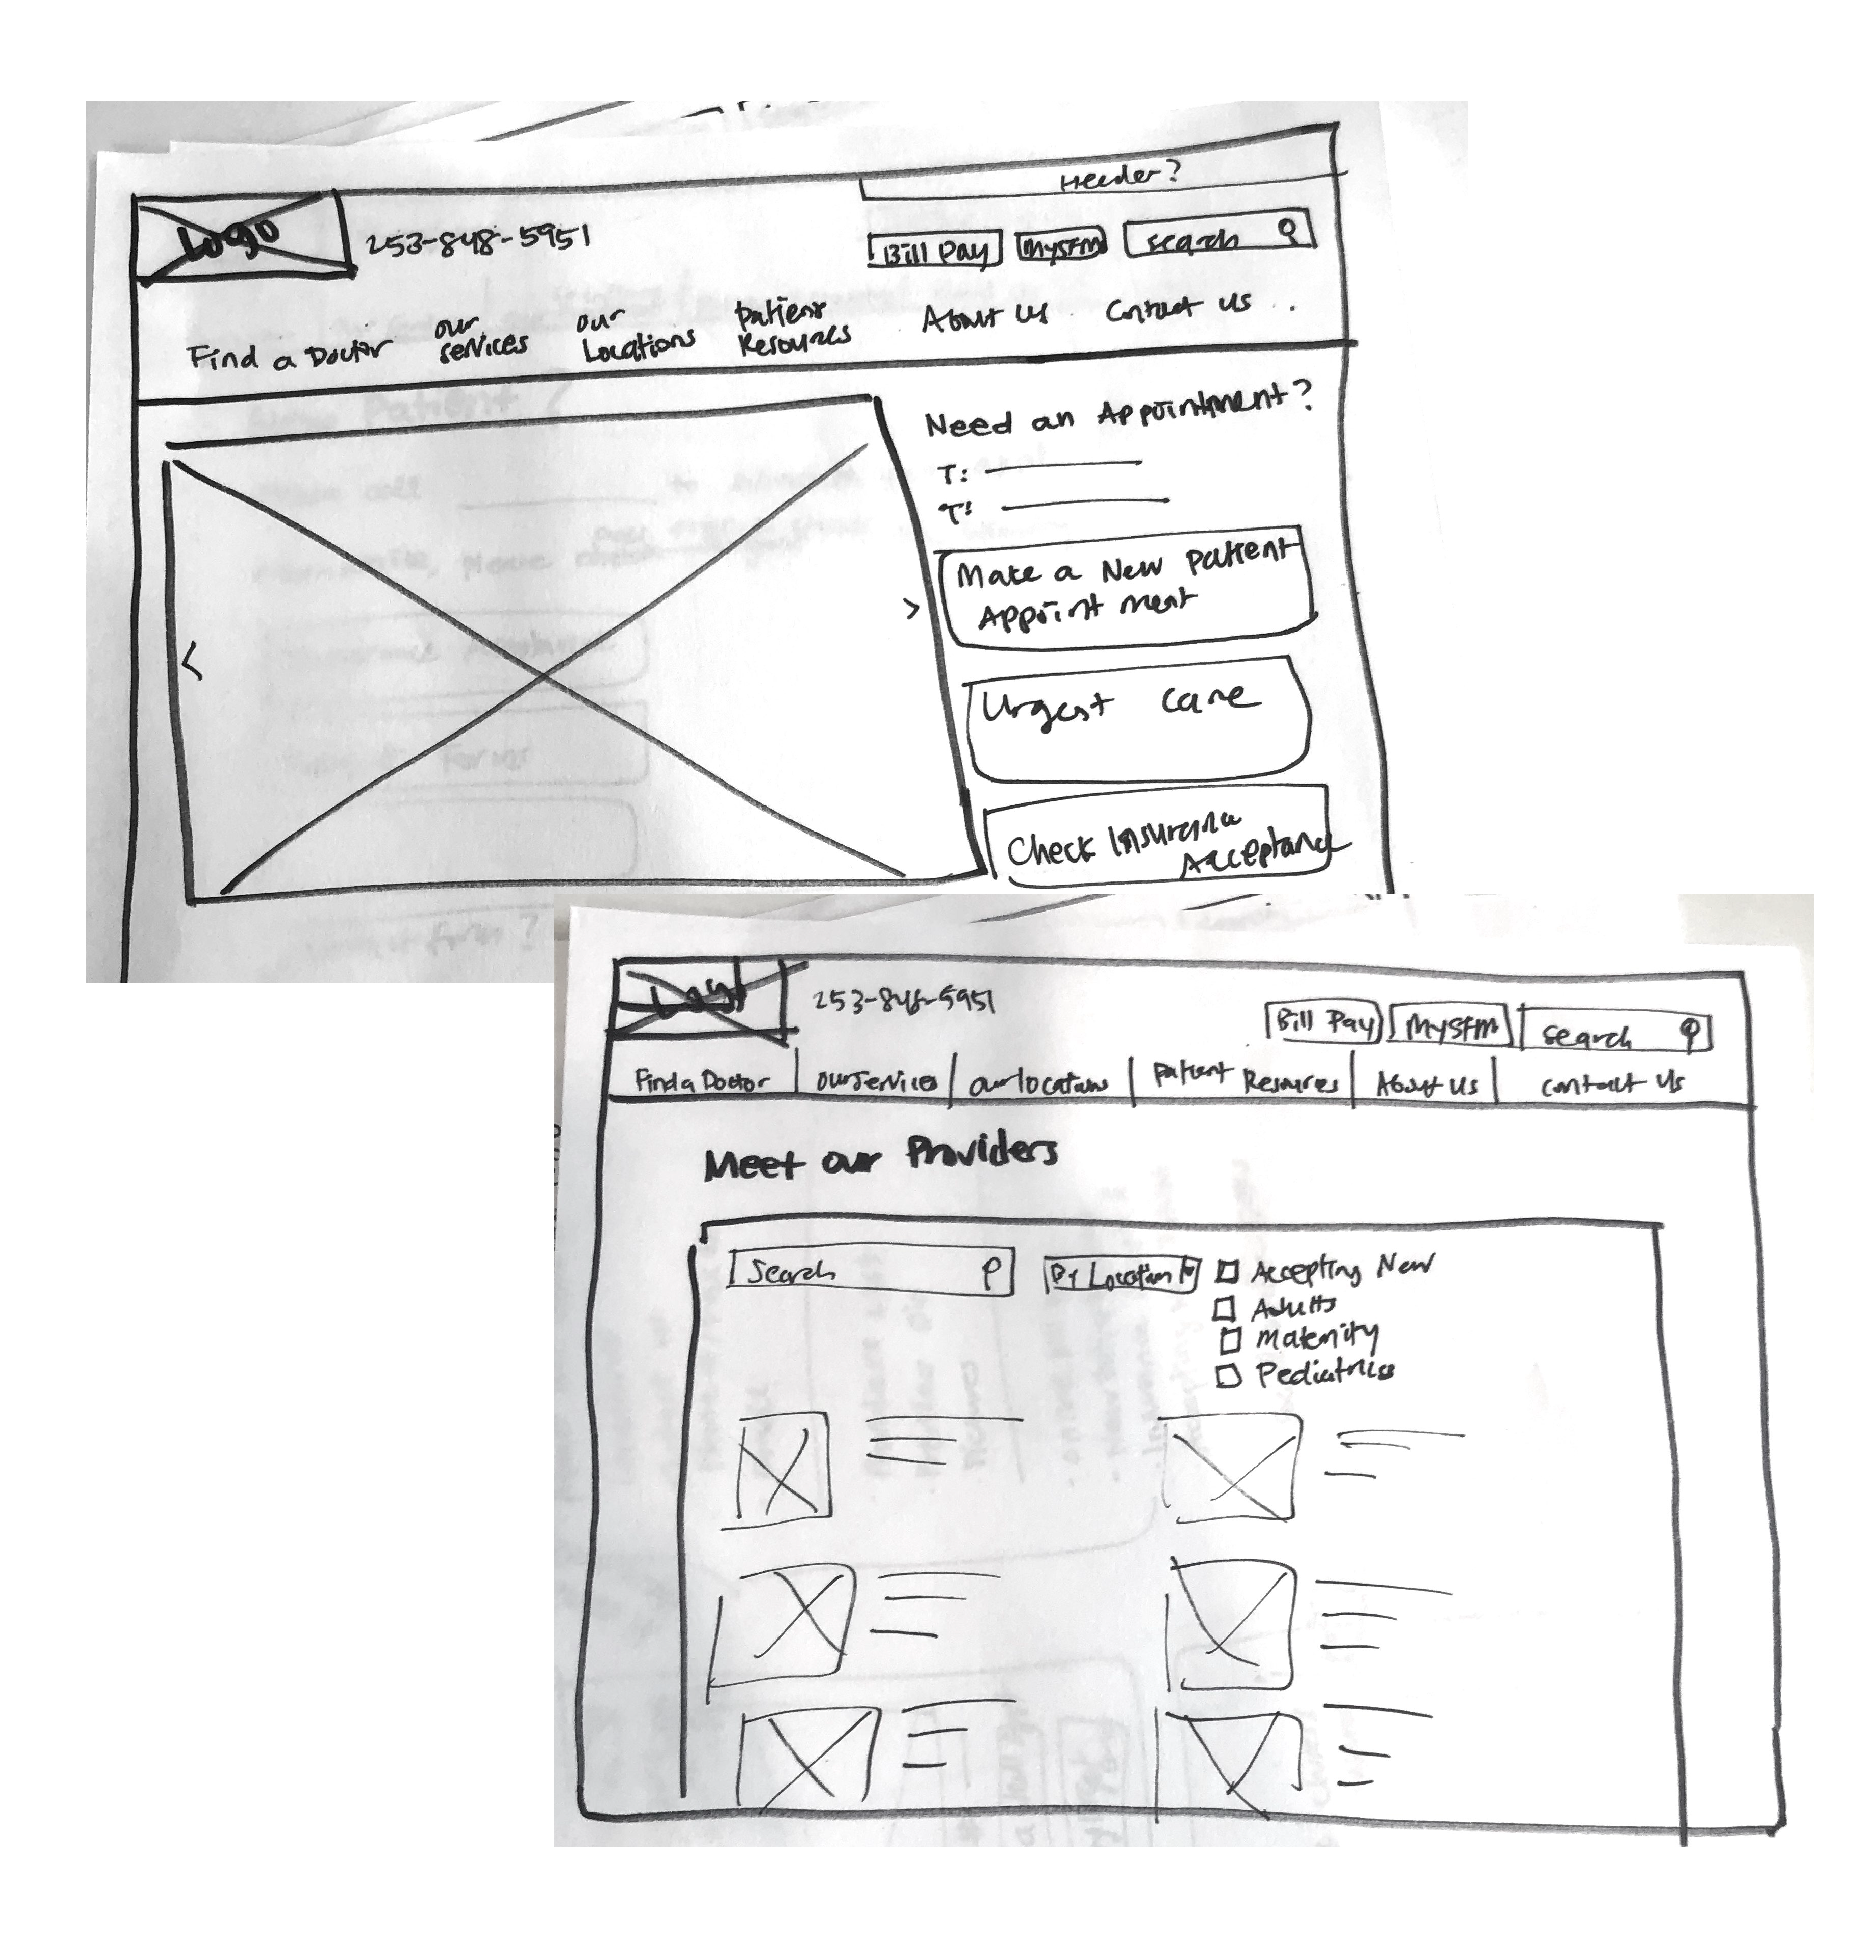 Sketches used for testing